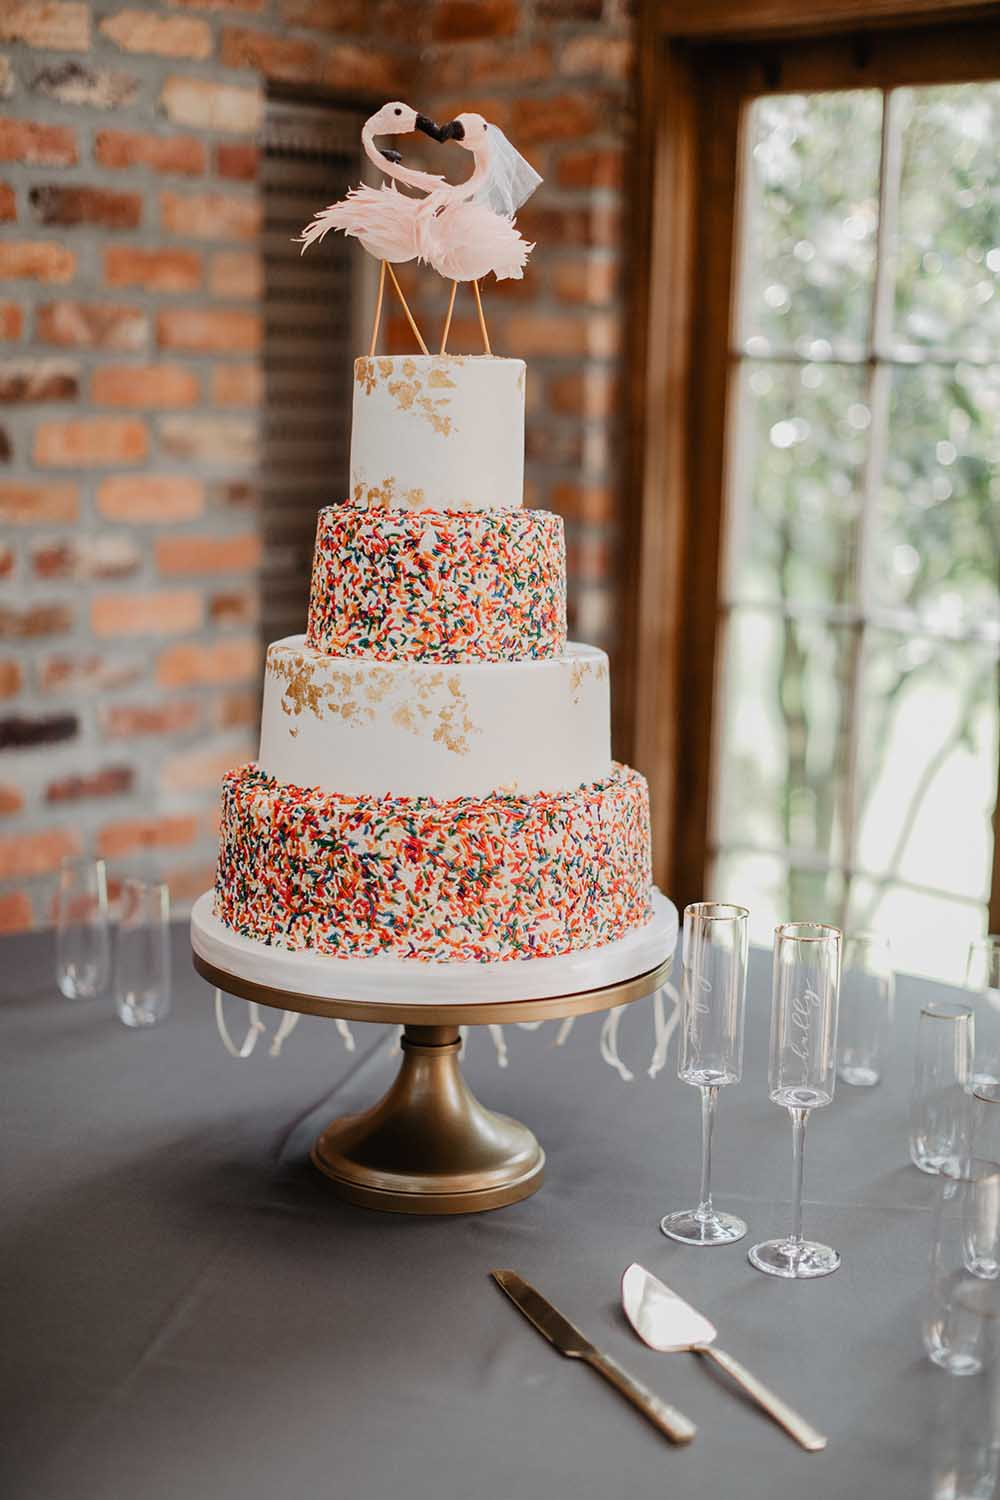 Confetti Sprinkle Wedding Cake with Flamingo Cake Toppers | photo by Emily Green Photography | featured on I Do Y'all